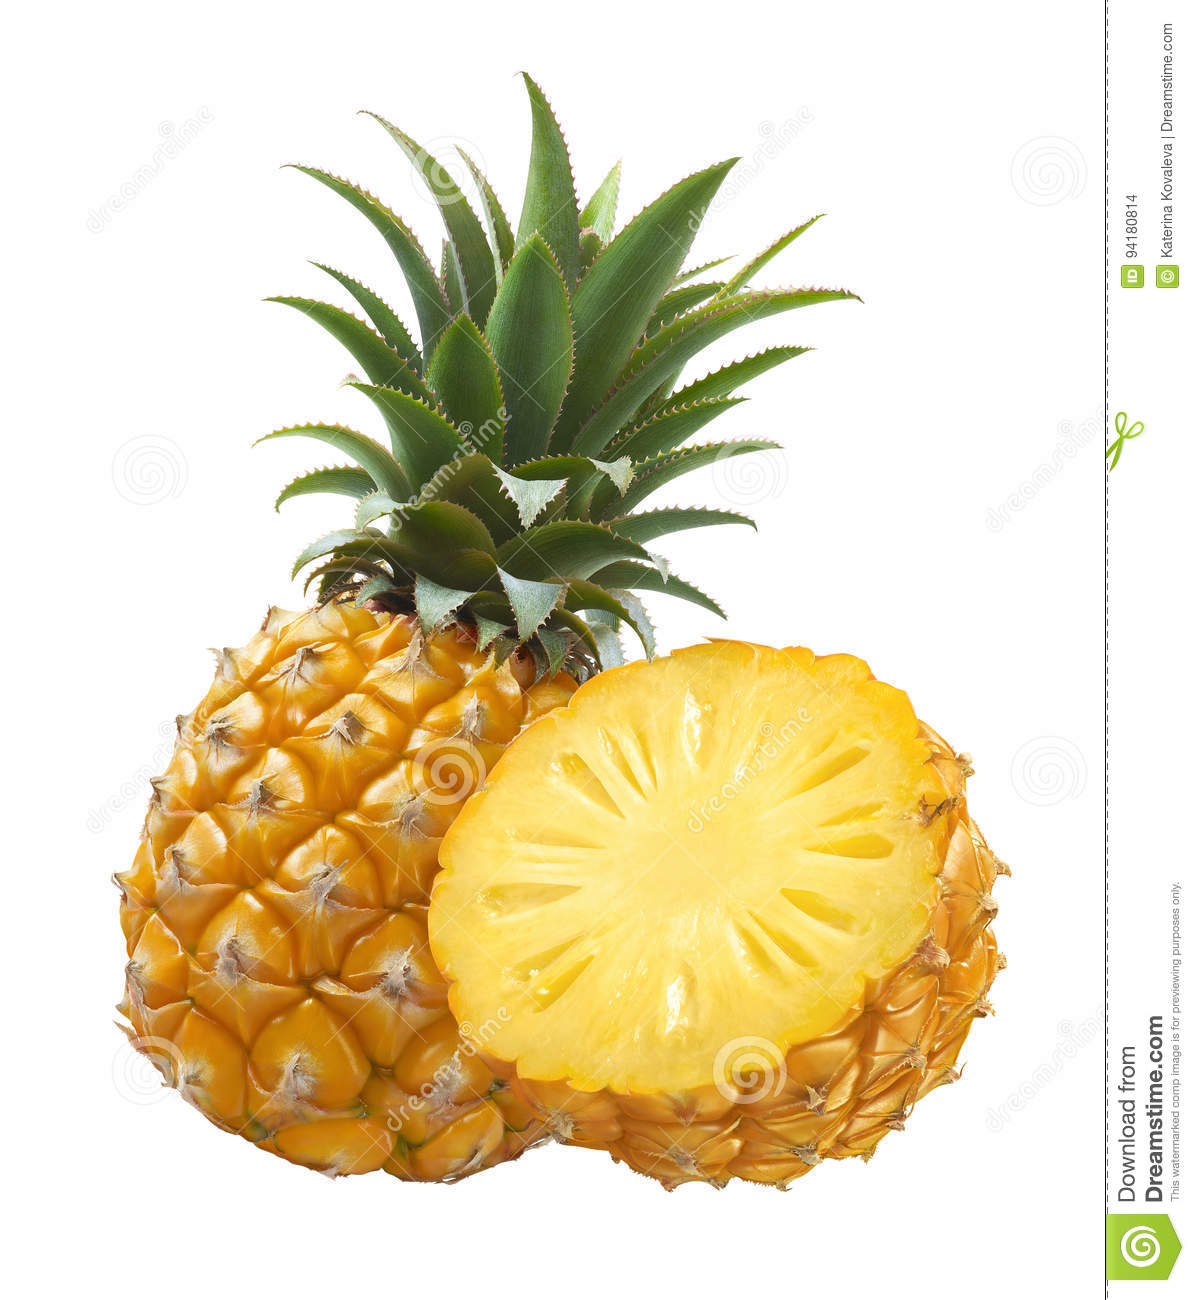 Pineapple whole and half isolated on white background